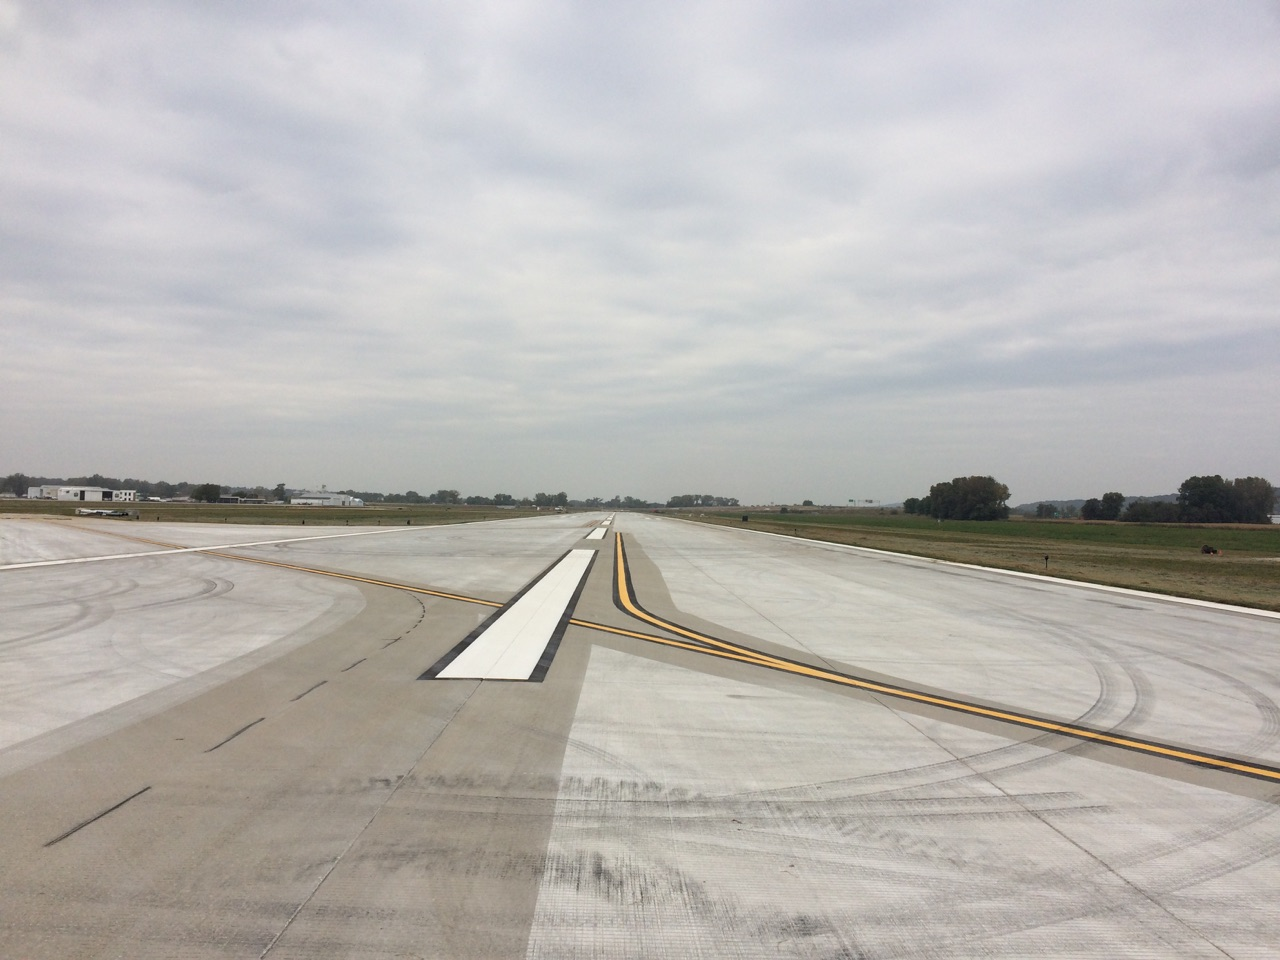 Jefferson City Memorial Airport RW 12-30